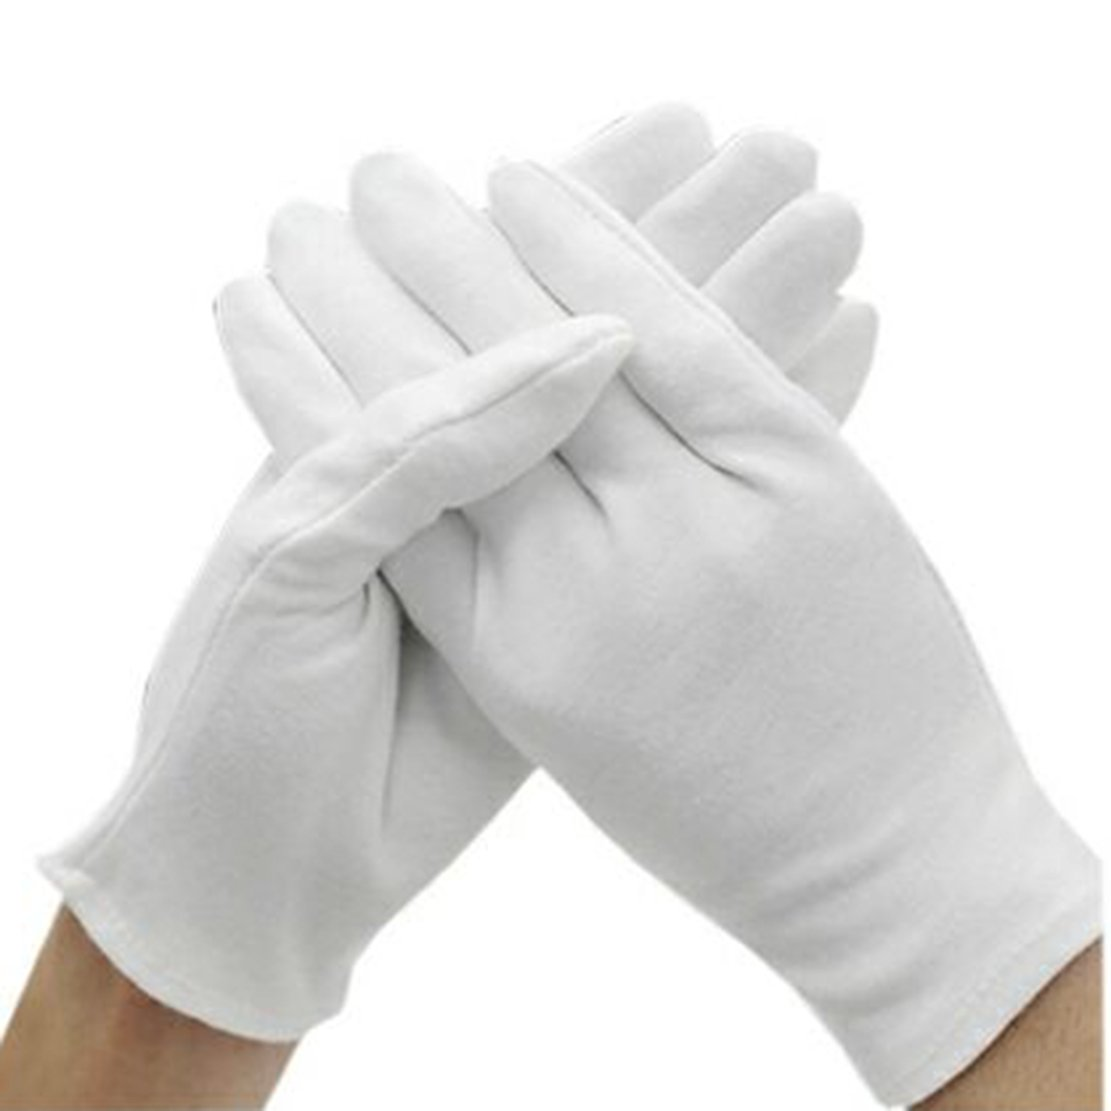 15 Pairs White Cotton Gloves,Coin Jewelry Silver Inspection Gloves Working Gloves.White Gloves Bulk for Men Women Formal Costume,Large Size. (15 Pairs)